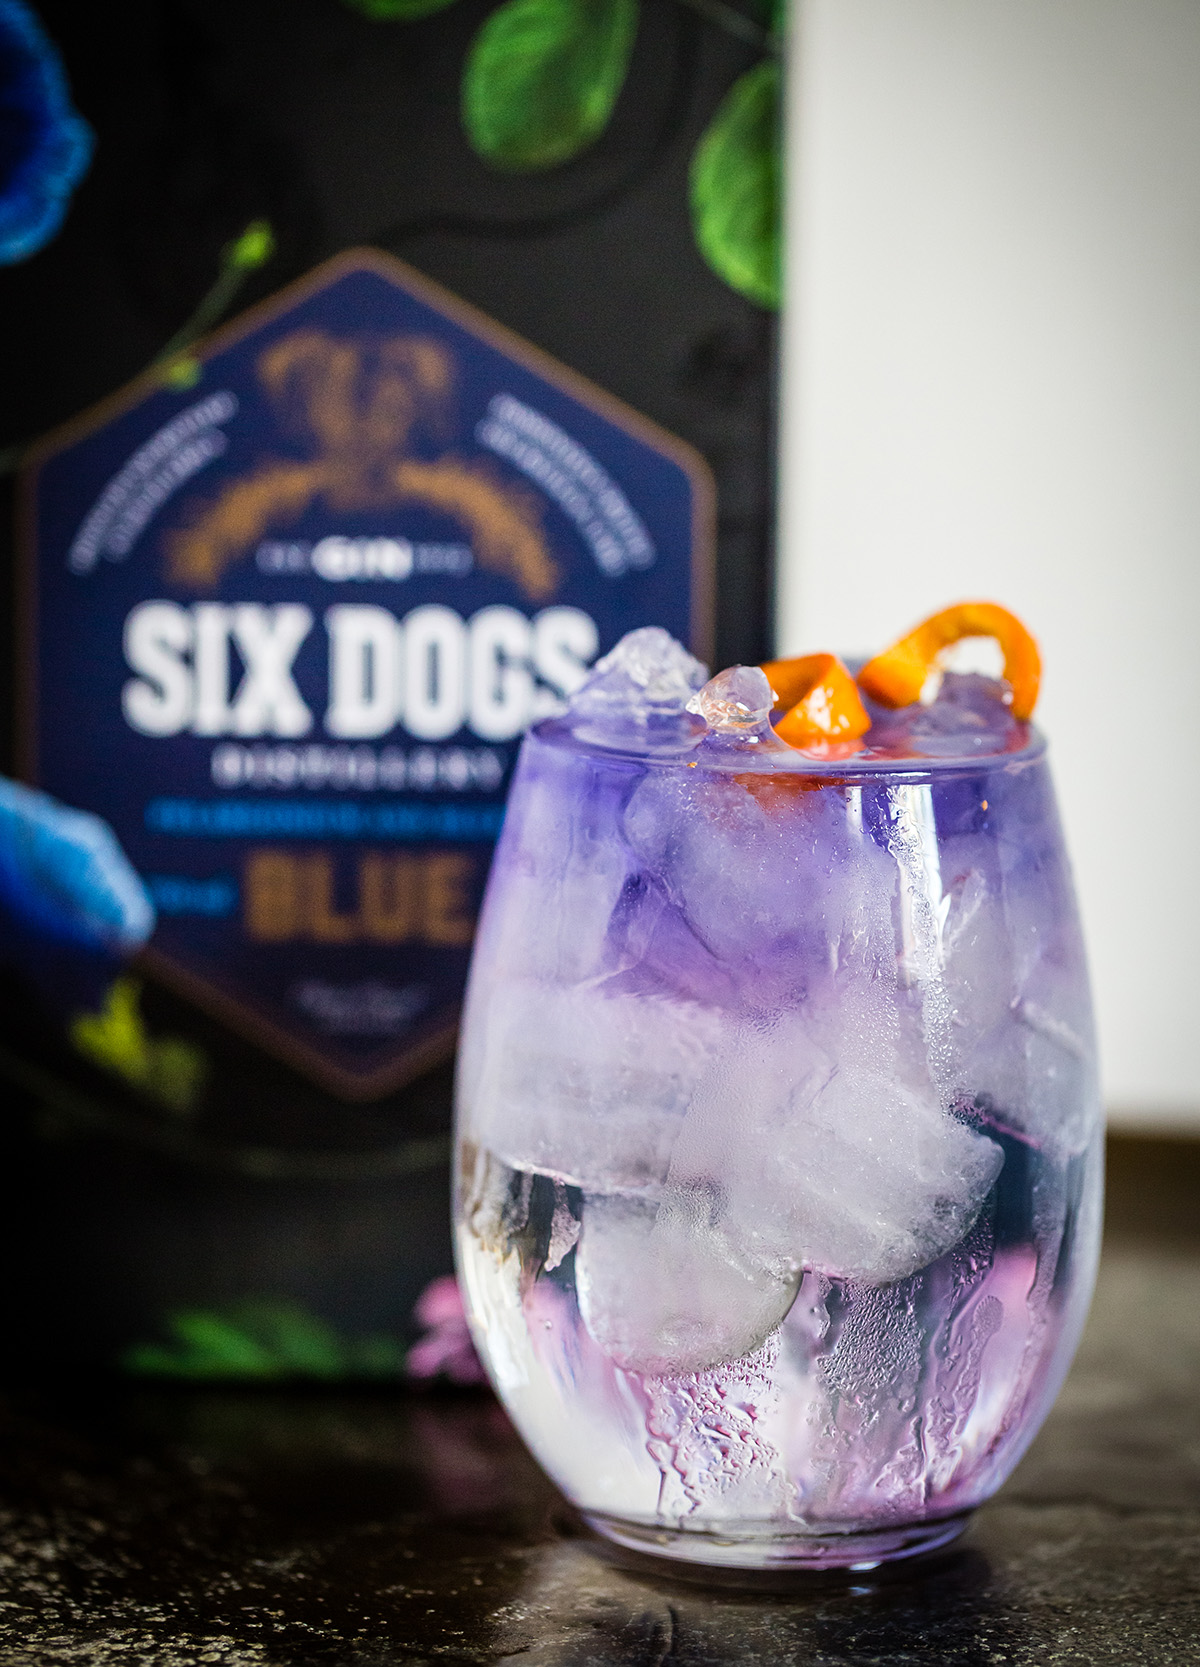 Six Dogs Distillery - At Home Gin Tasting